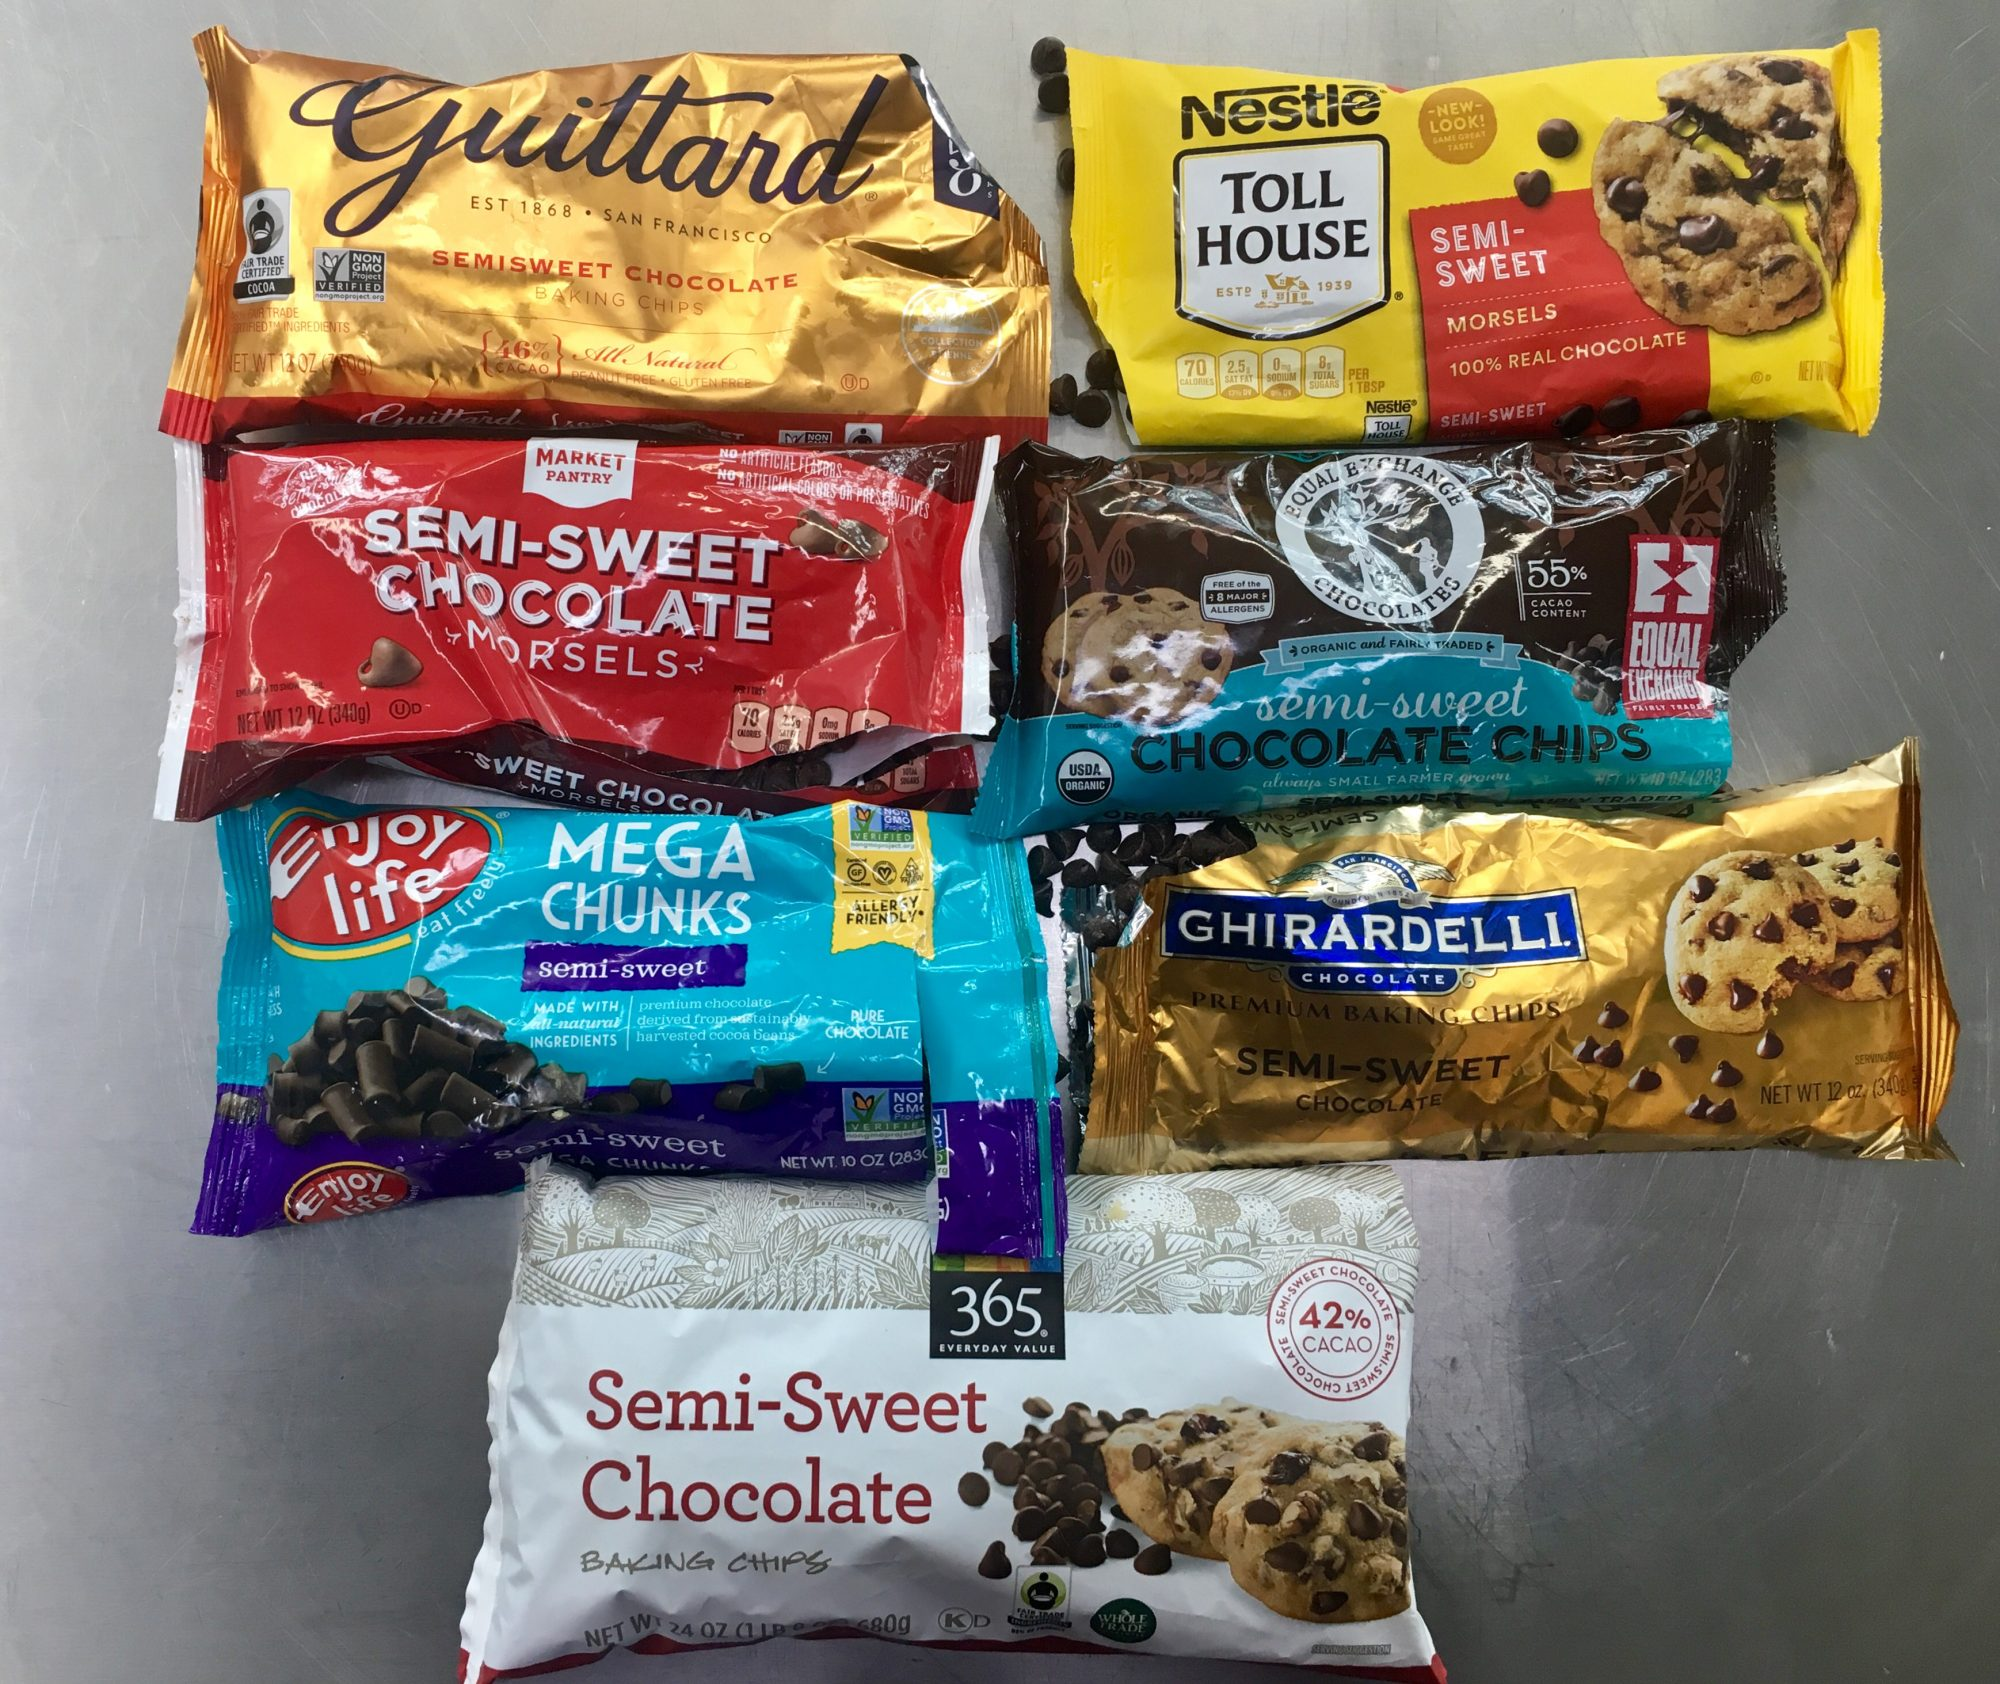 We Tasted 7 Chocolate Chip Brands and This Was the Best